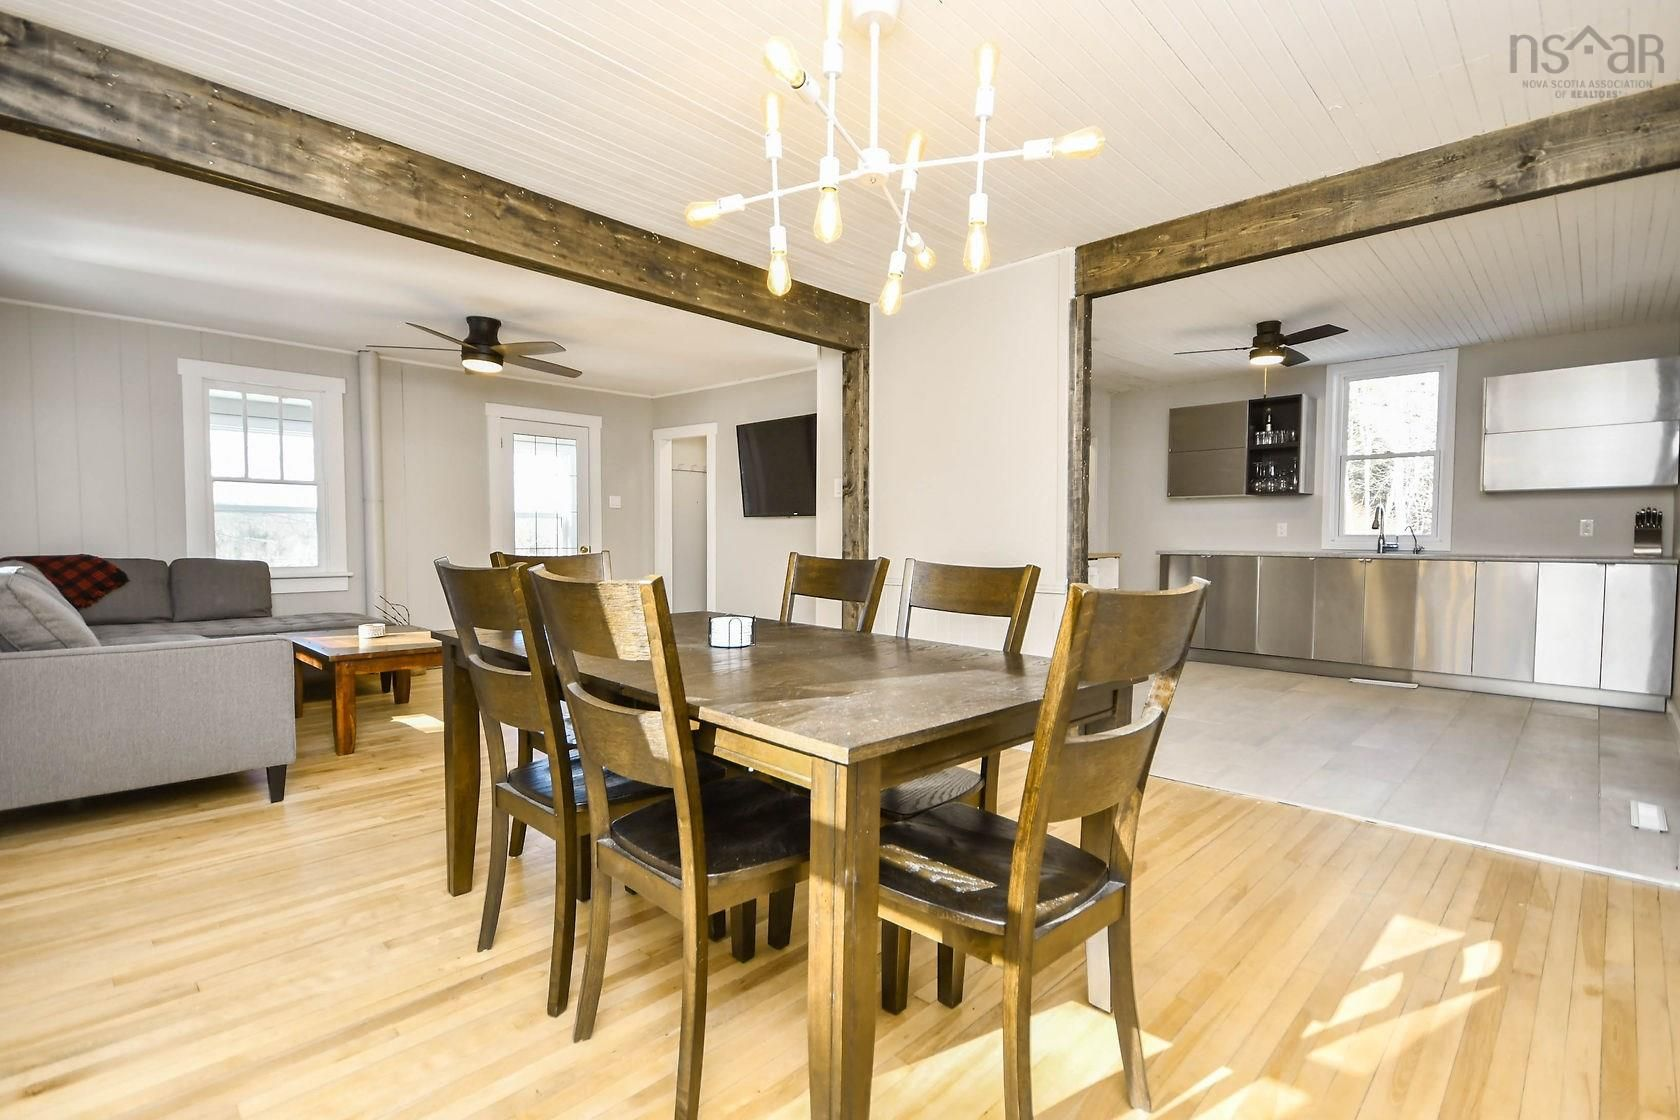 Photo 12: Photos: 284 East River Road in Sheet Harbour: 35-Halifax County East Residential for sale (Halifax-Dartmouth)  : MLS®# 202120104